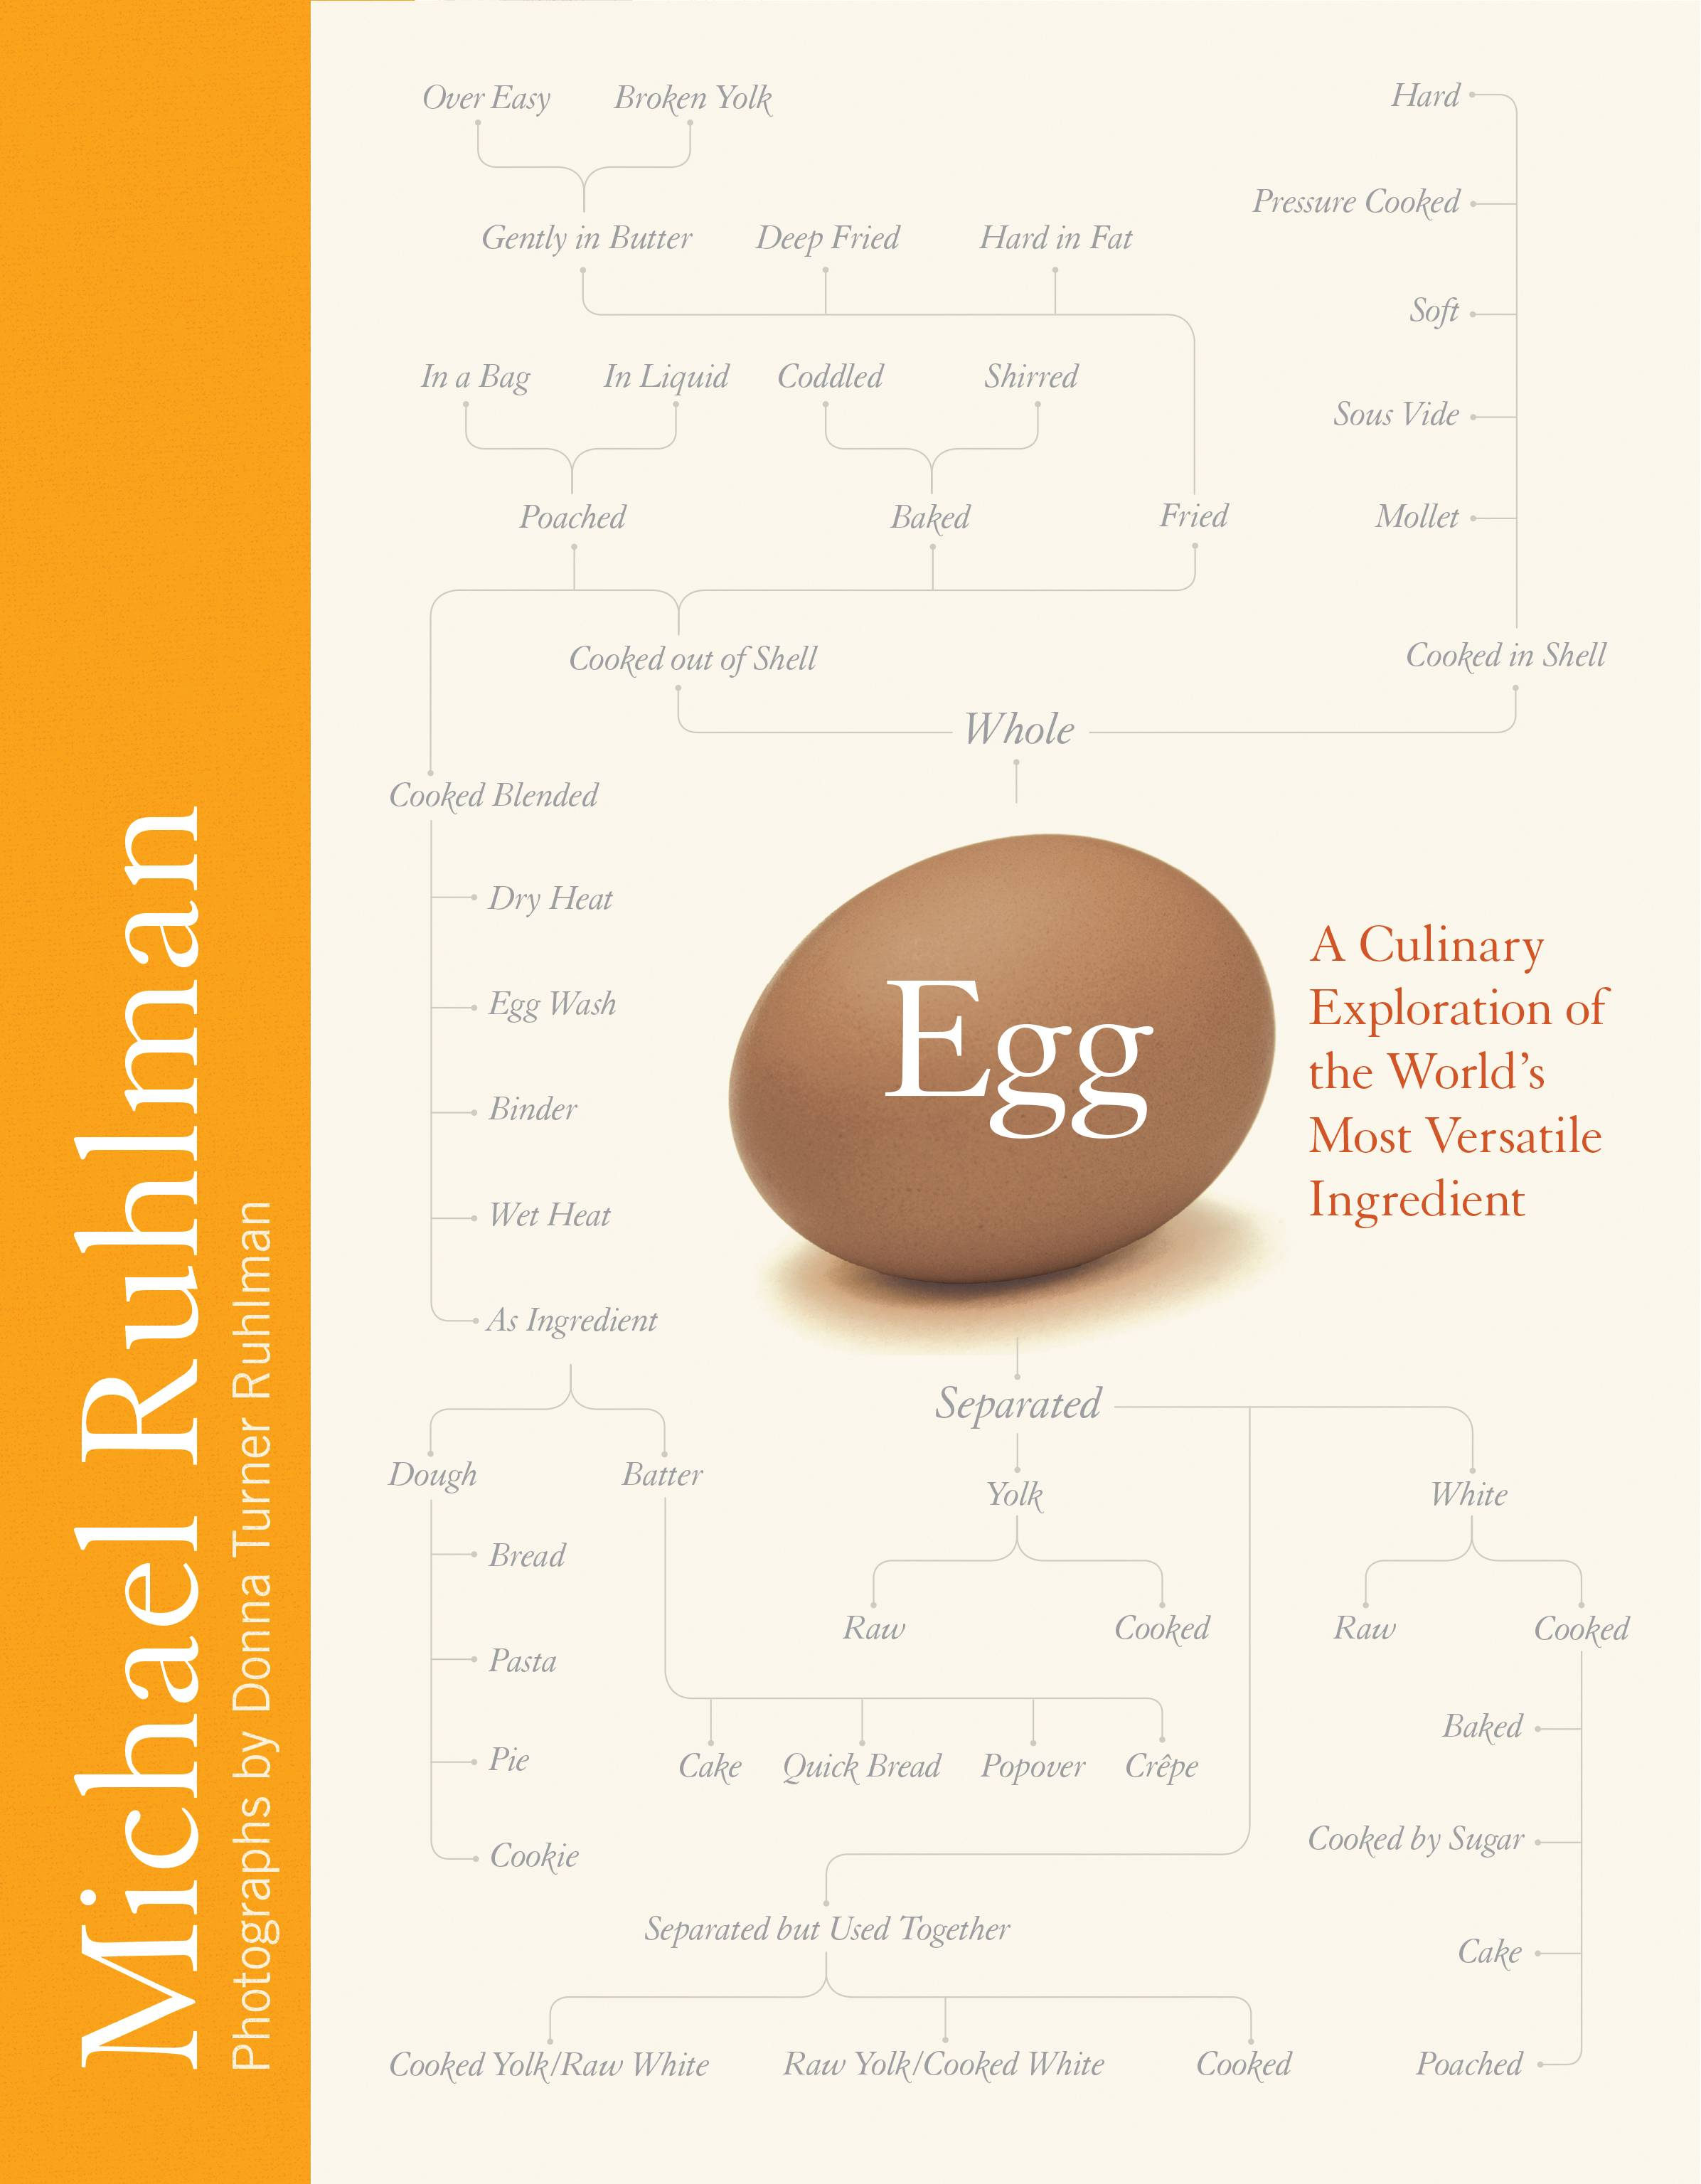 Lean and lovin' it: Celebrate eggs and the many ways to cook them